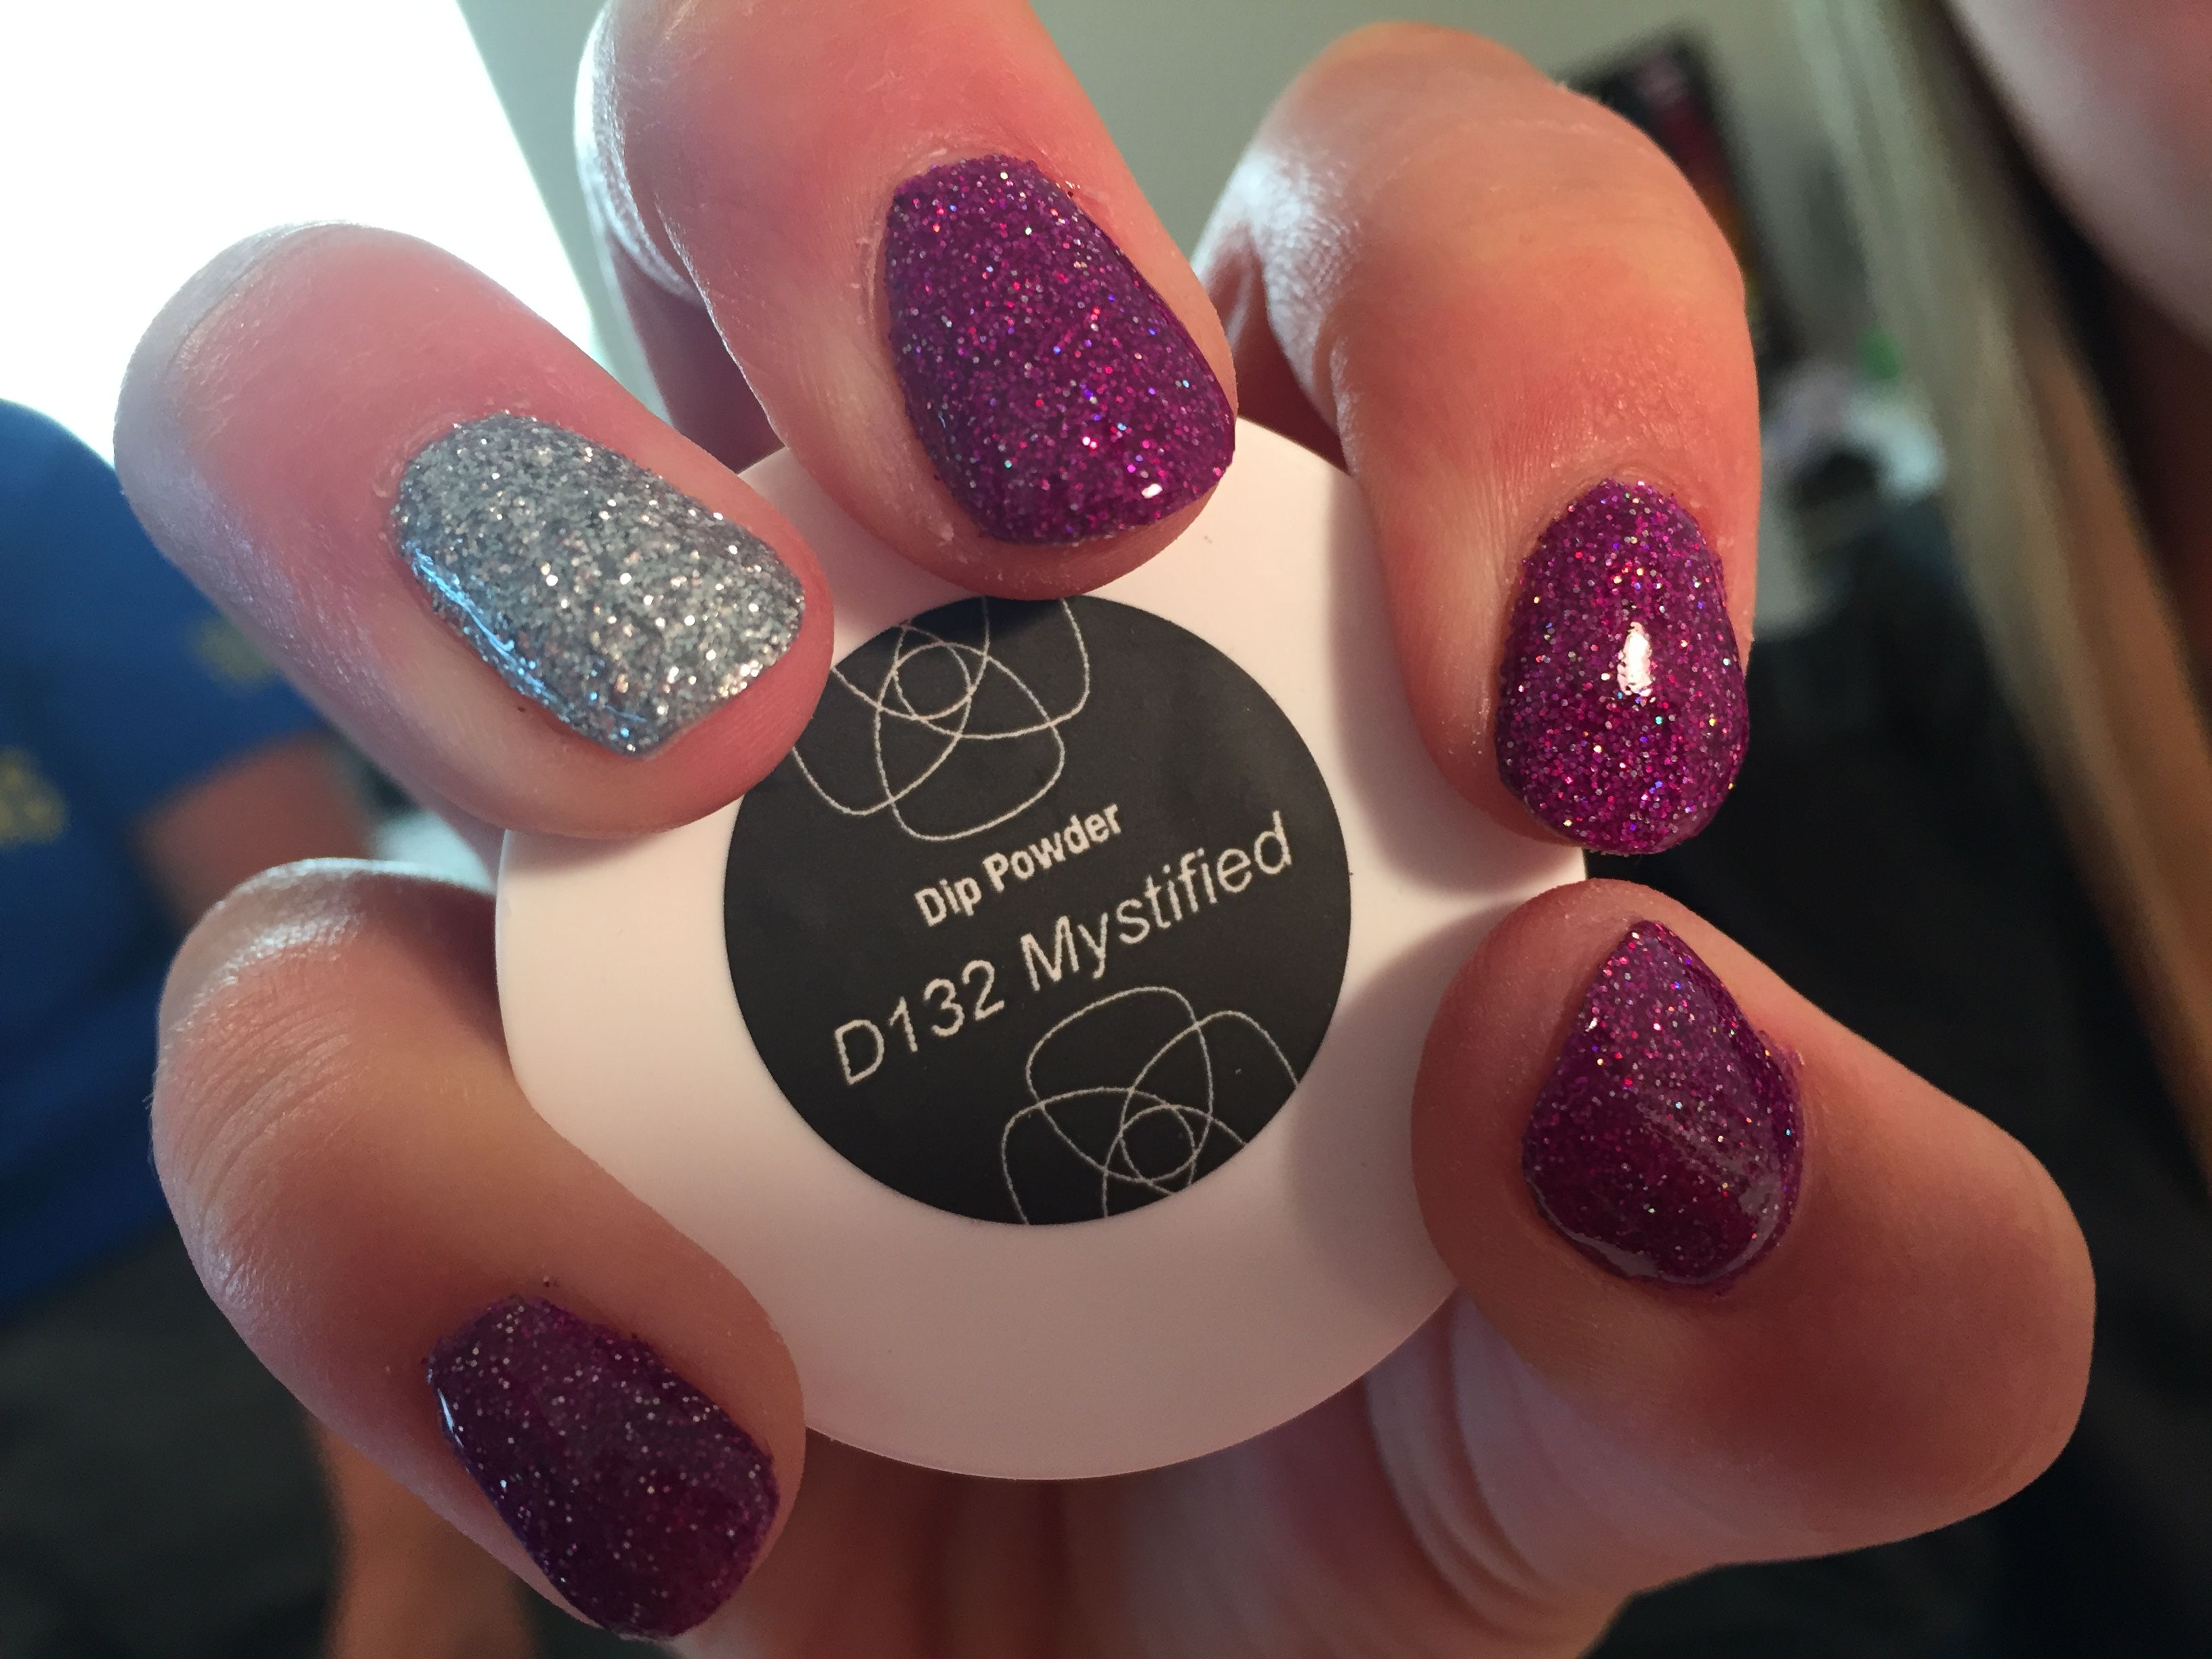 Revel Nail Dip Powder Mystified And Phoebe